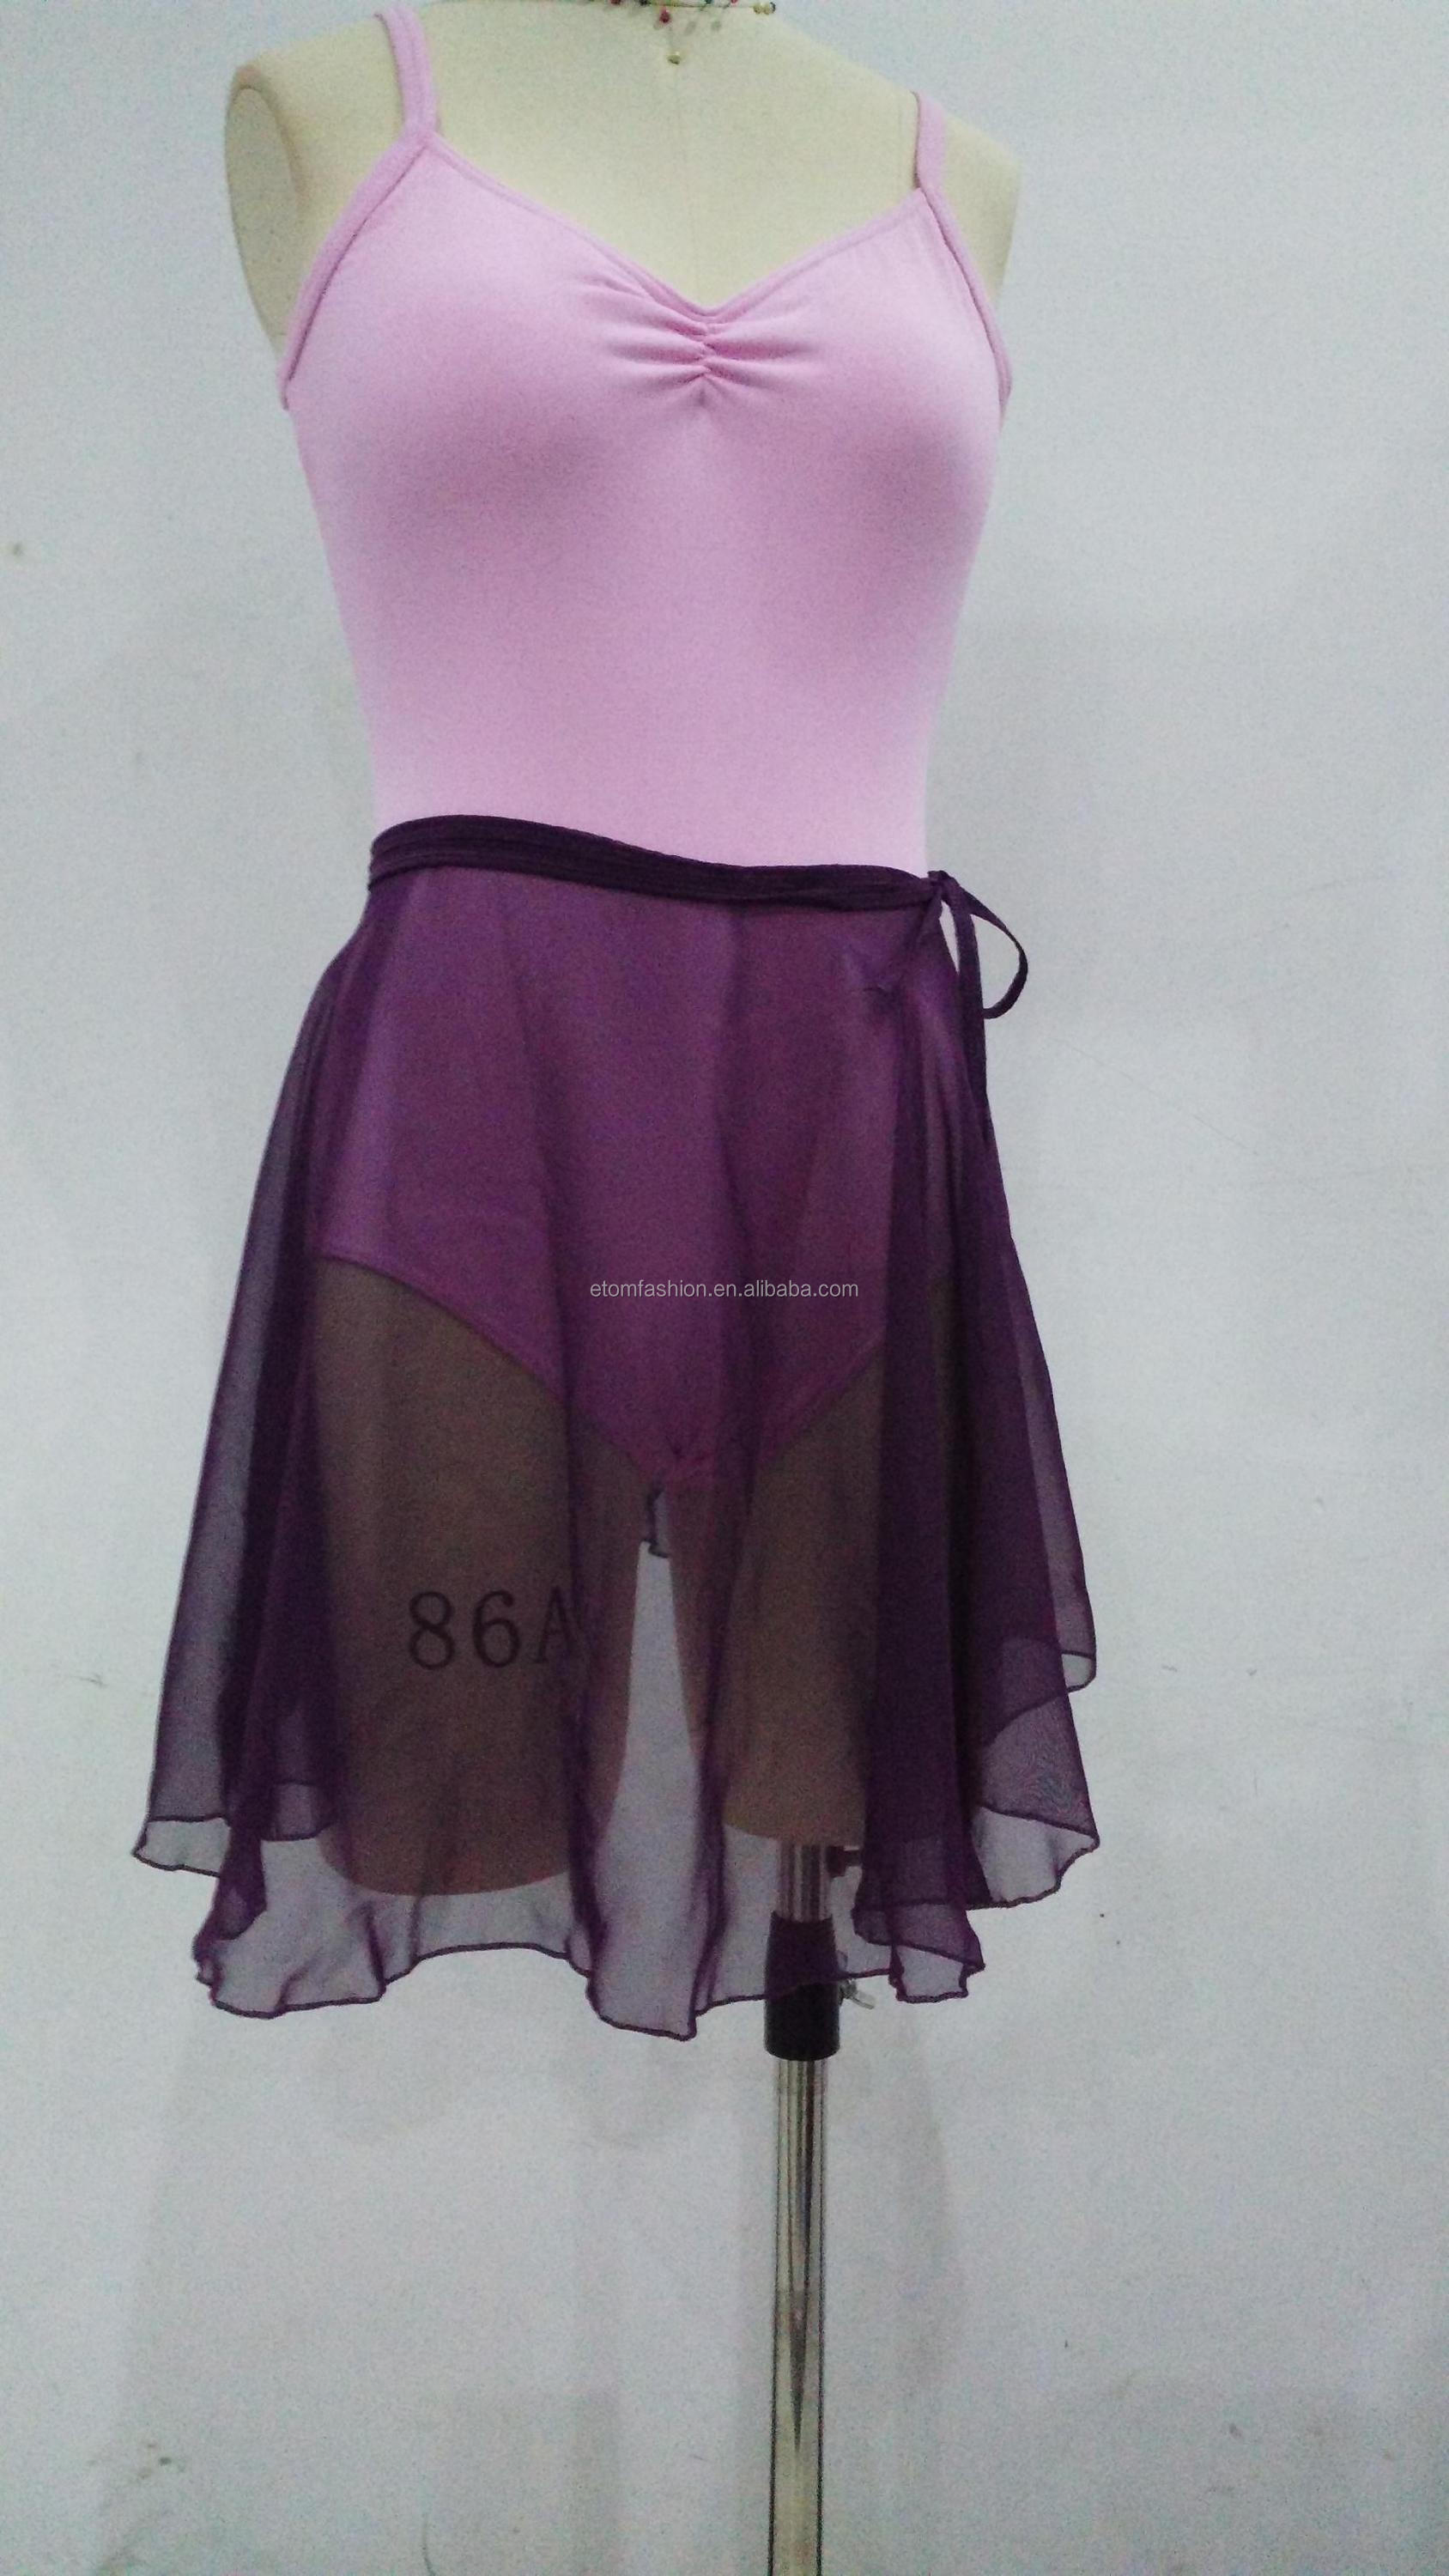 High quality Georgette Ballet Wrap Skirt e17034 from Guangdong